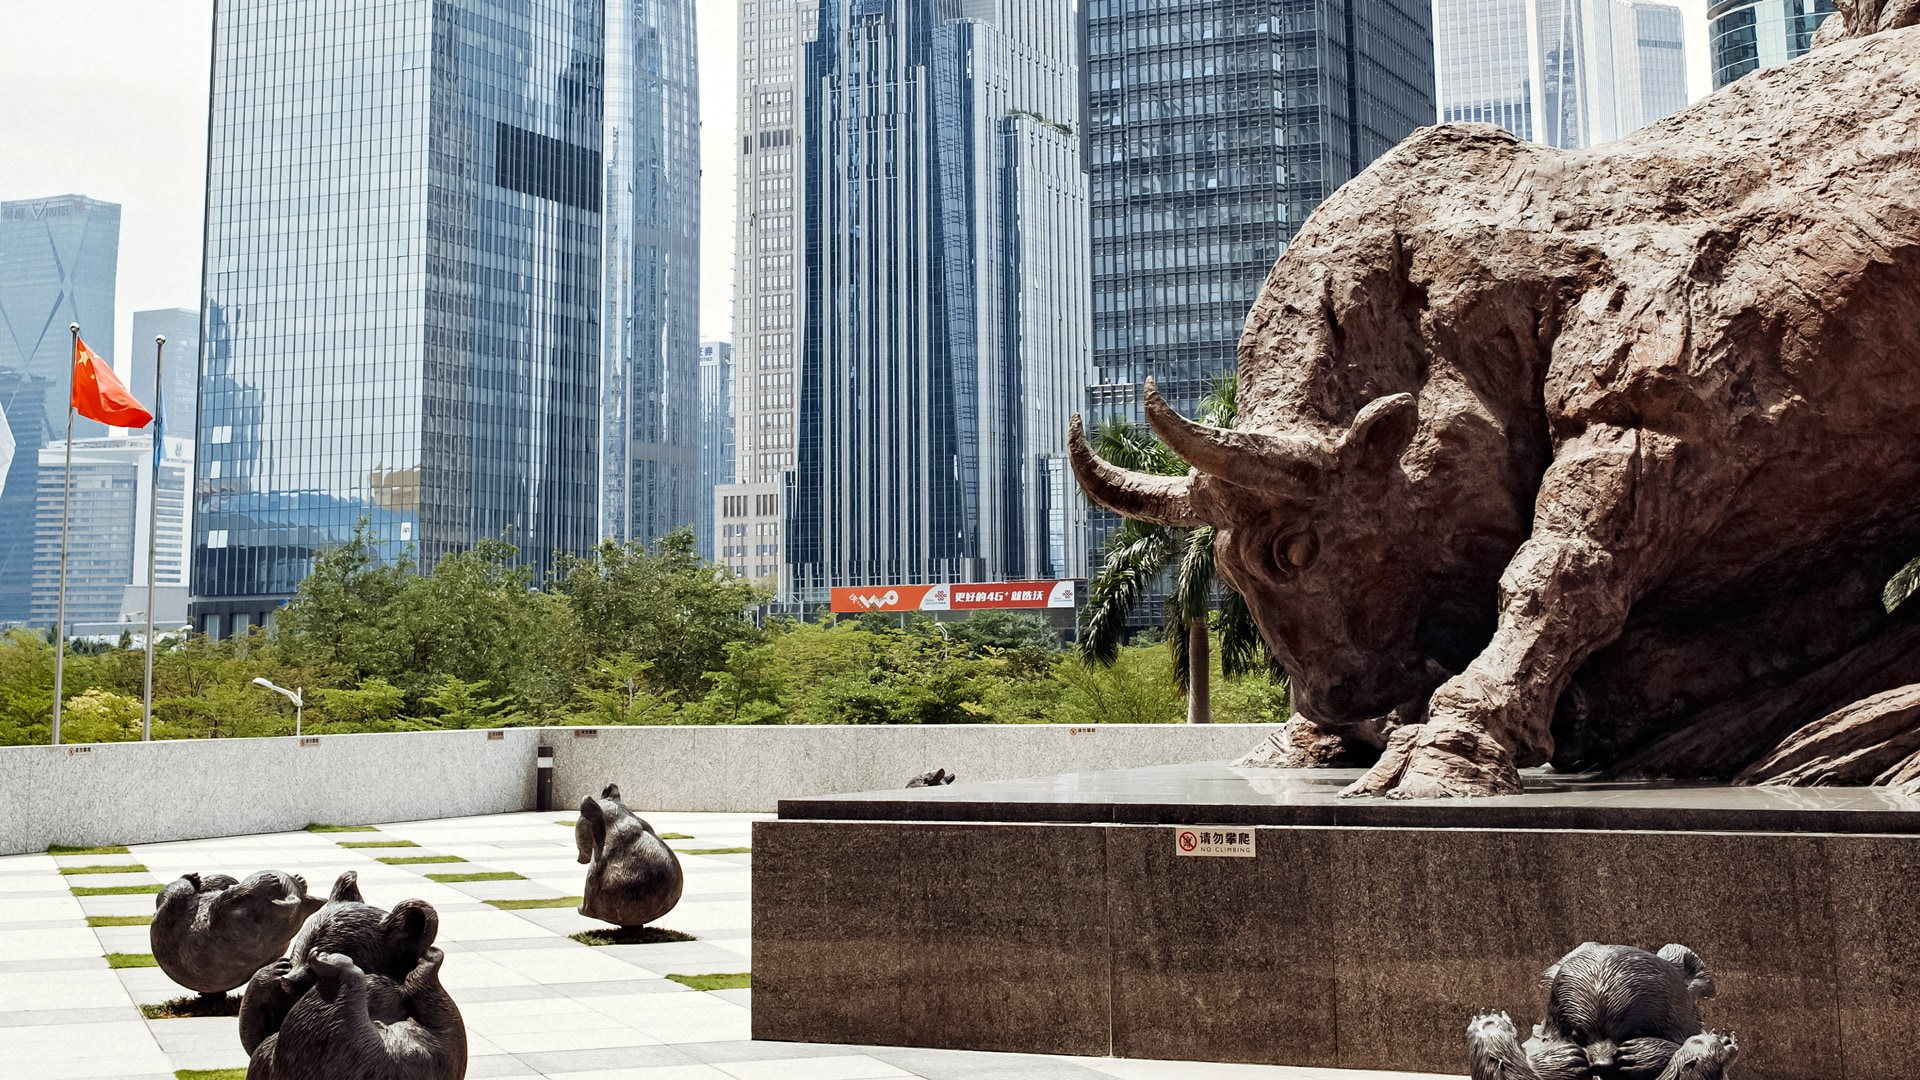 What sweet little bears! There could hardly be a more symbolic way of demonstrating a lack of fear of bear markets. Chinese shareholders visibly place their faith in the bull.